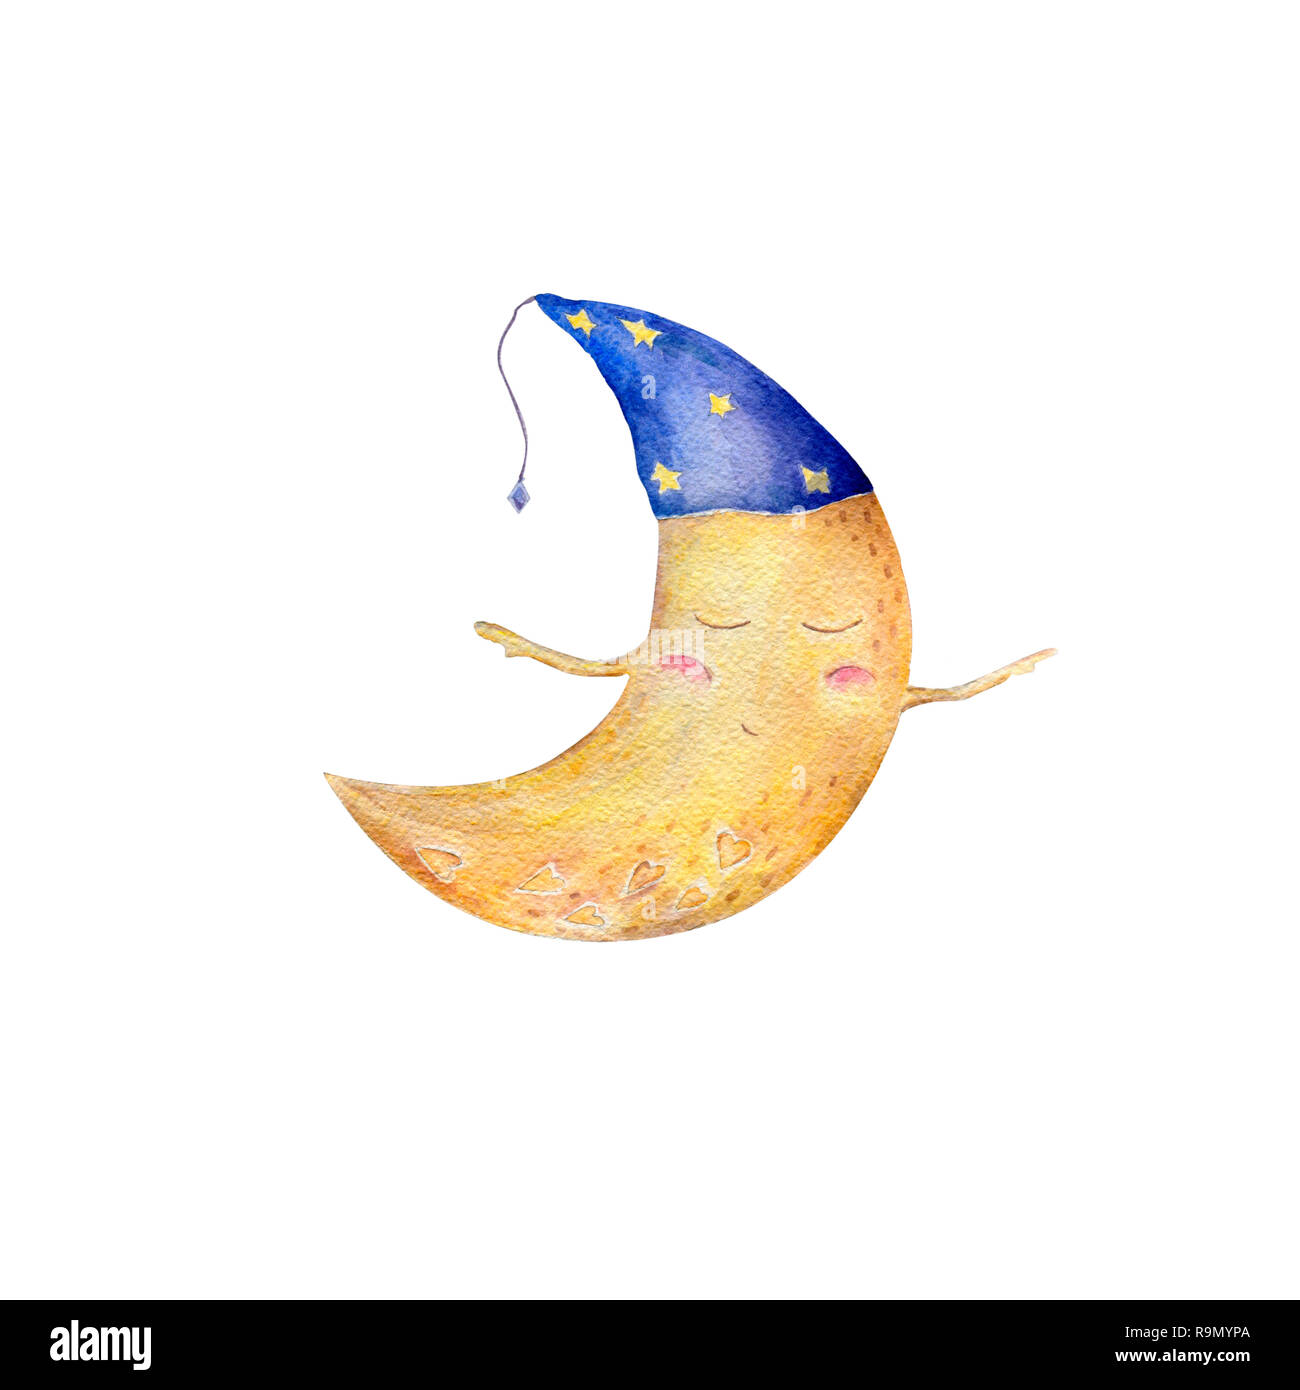 Moon watercolor clip art yellow moon funny character fly moon painting illustration half moon sleeping moon in hat geometric on white background. - Stock Image